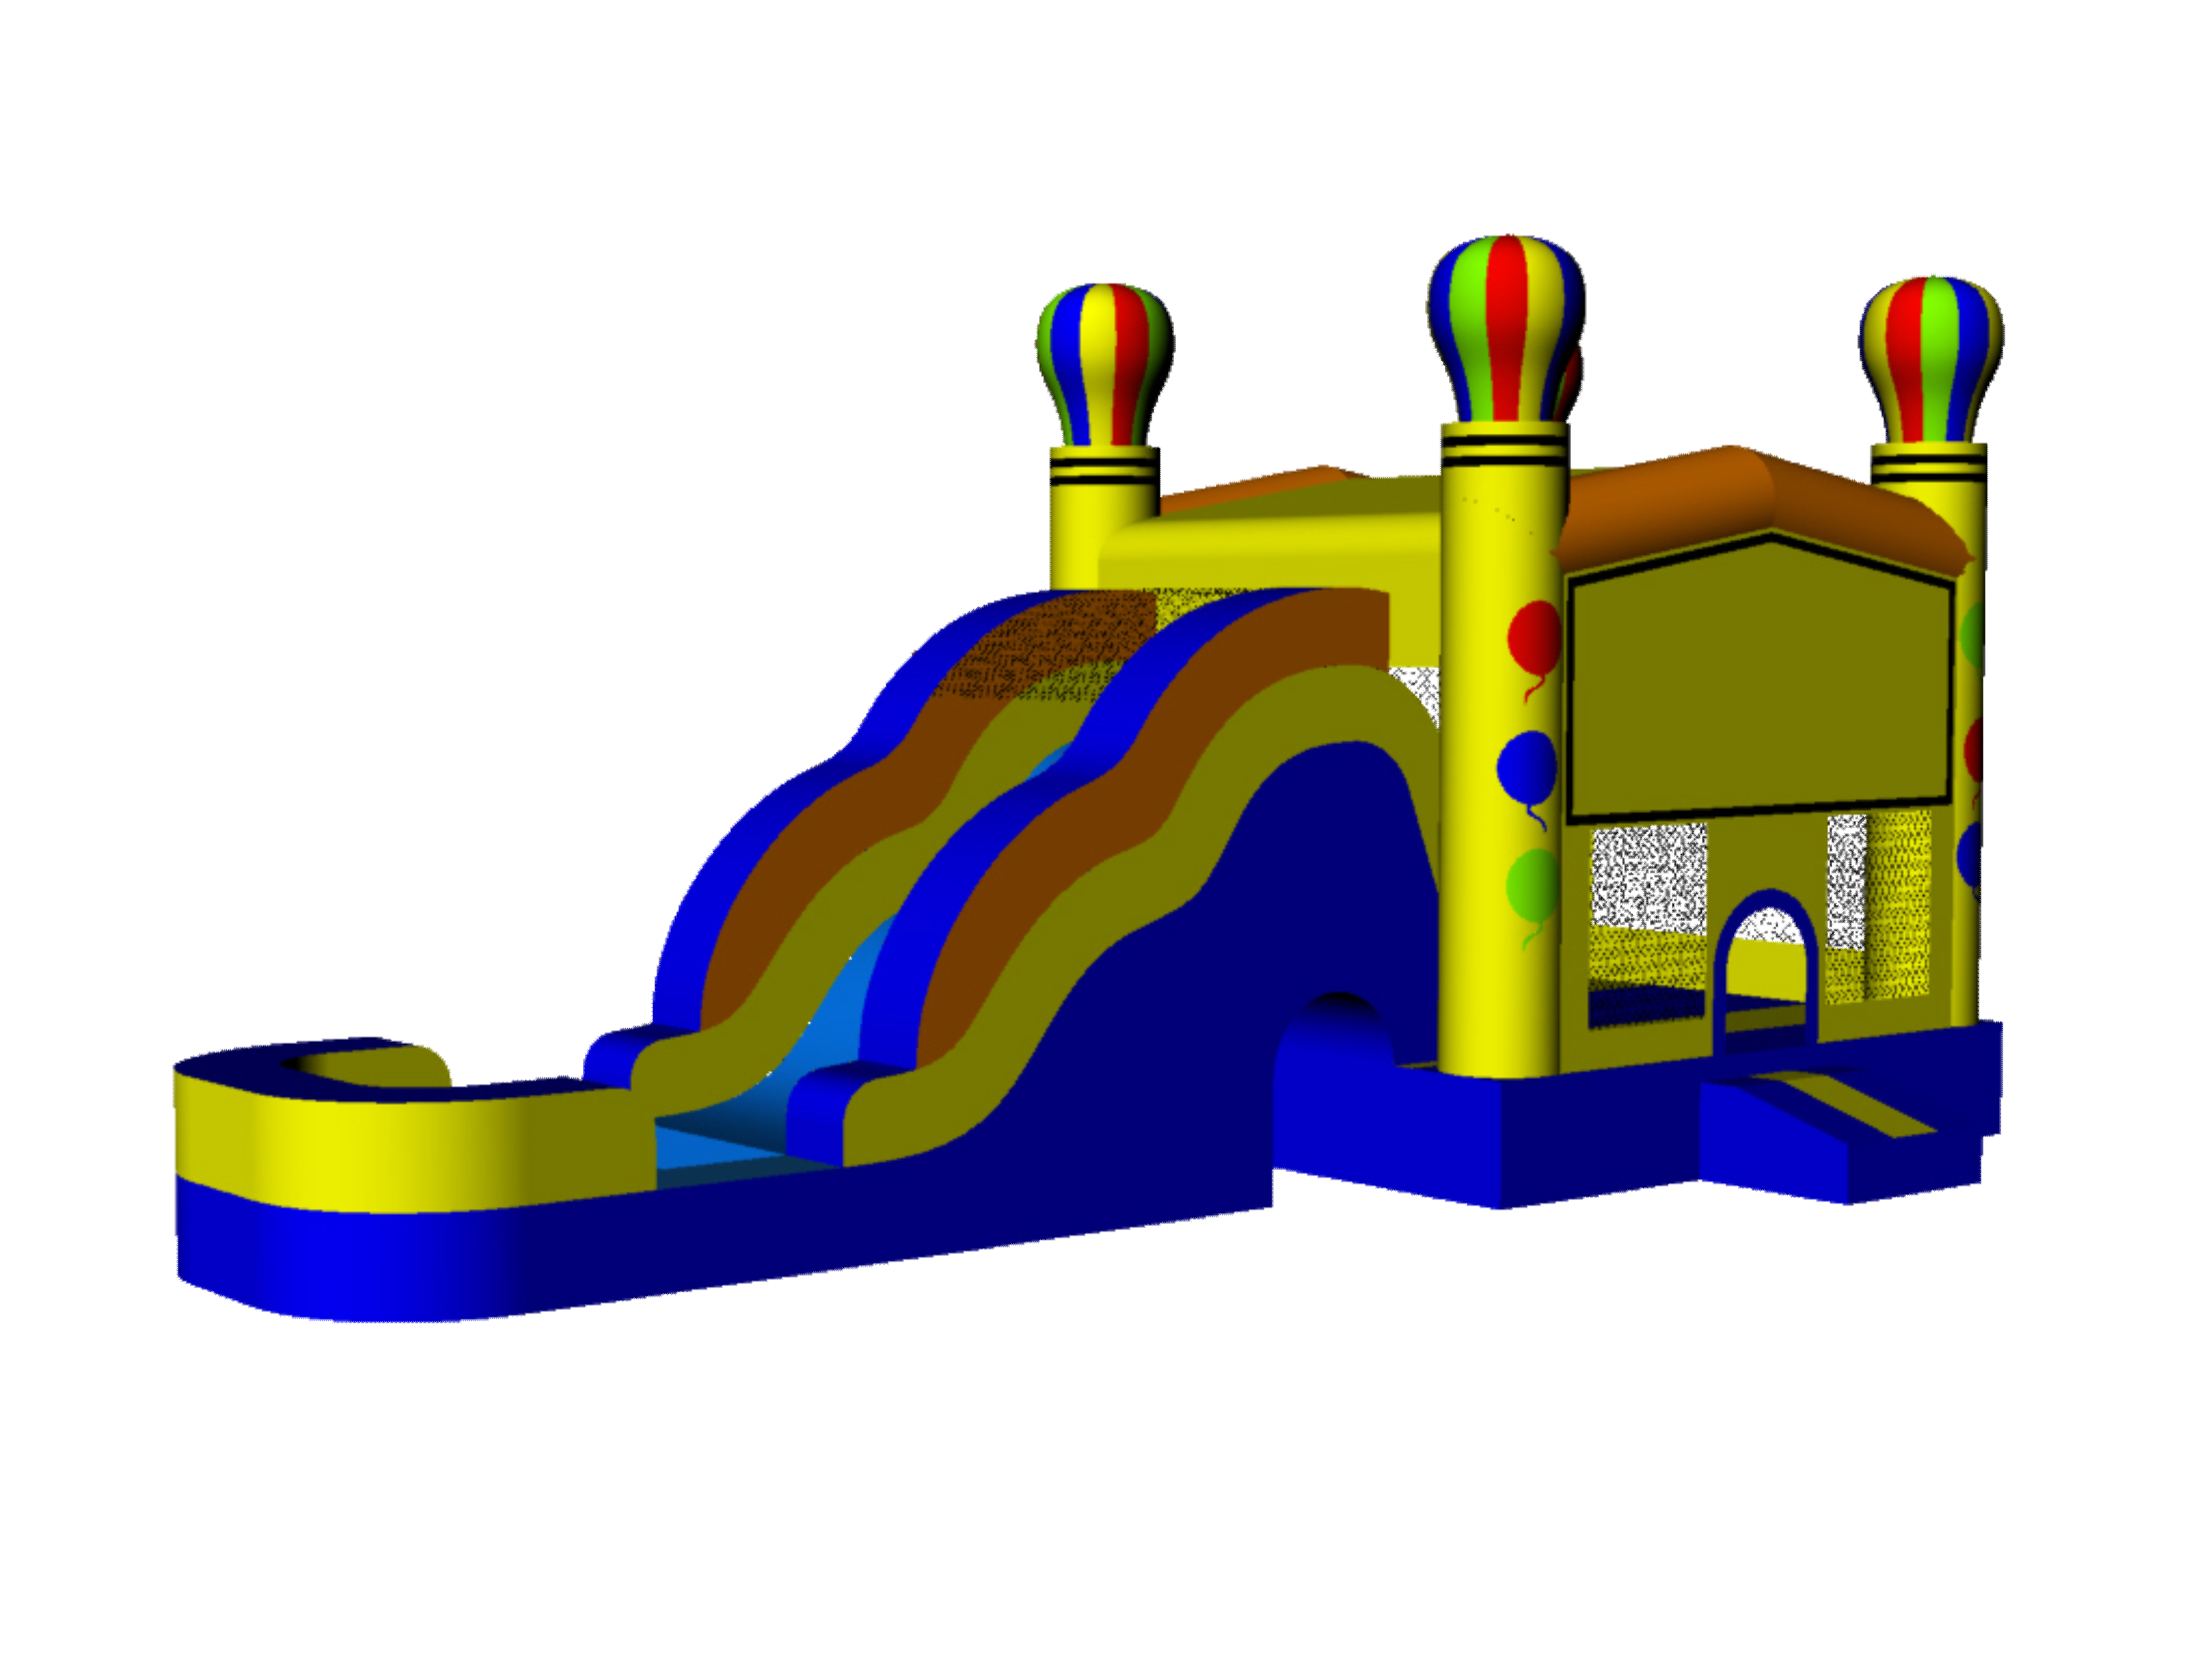 Waterslid bouncy house clipart image Inflatable Water Slide Clipart | Free download best ... image